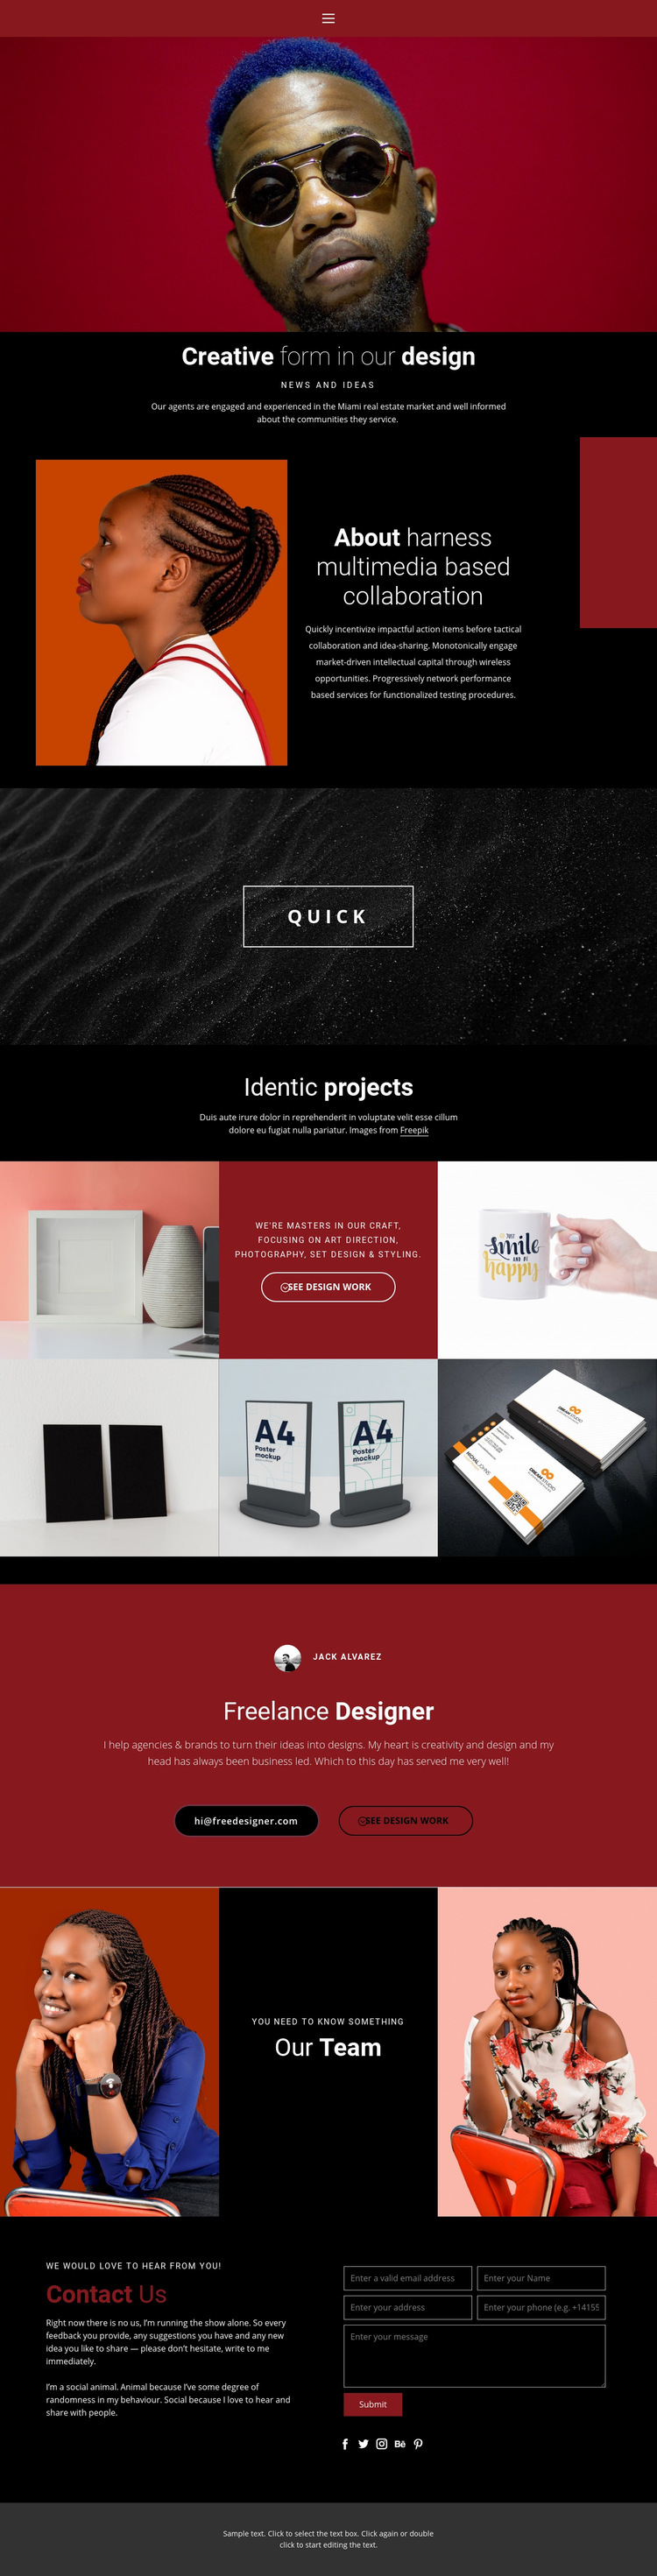 Creative form in design Web Page Design